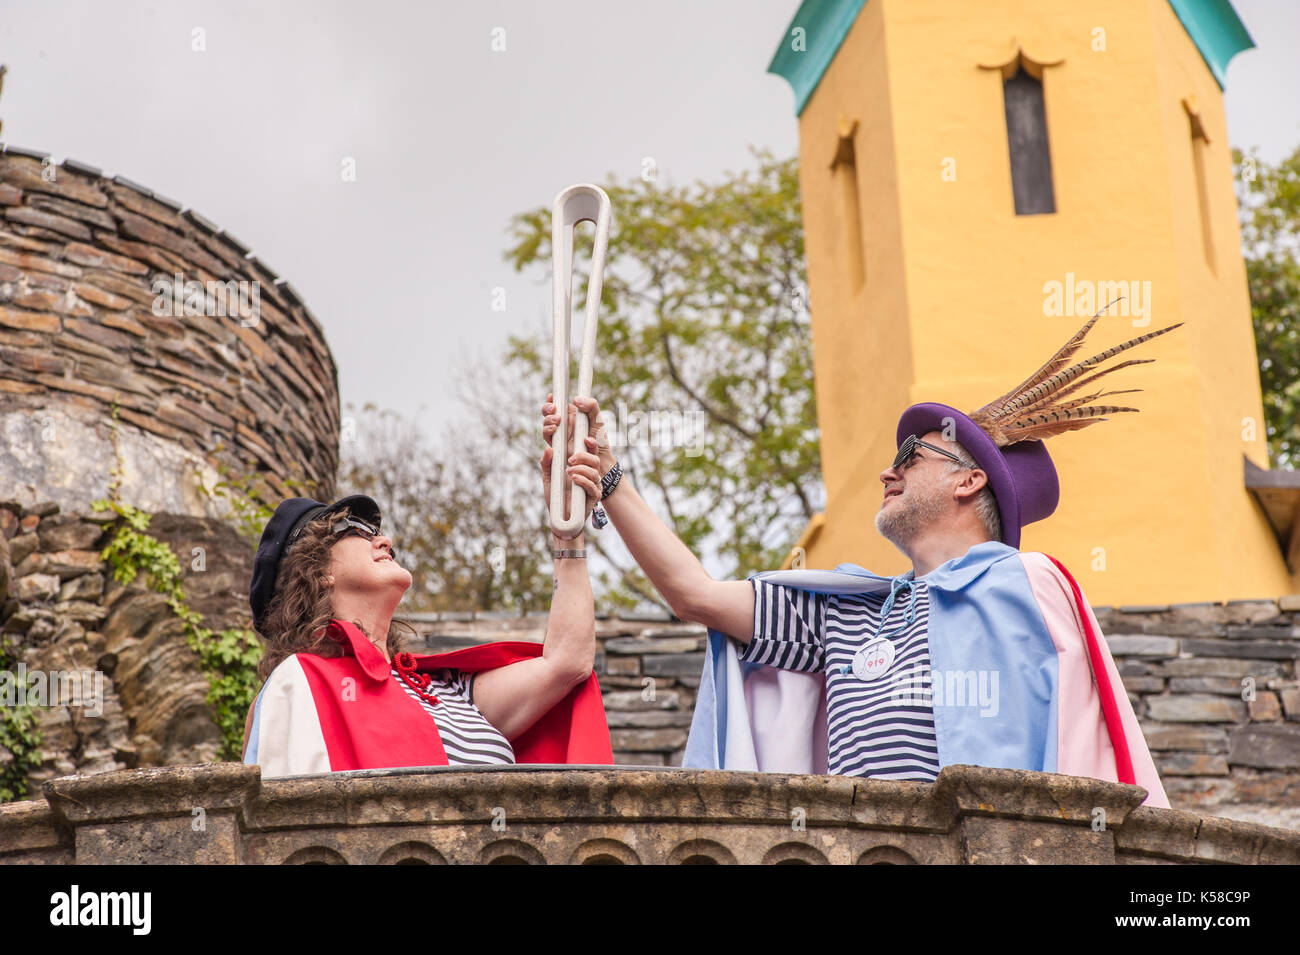 Portmeirion, Wales, UK. 8th September, 2017. Festival Fun at Festival No.6, Portmeirion, Wales, UK. 8th Sep, 2017. Stock Photo